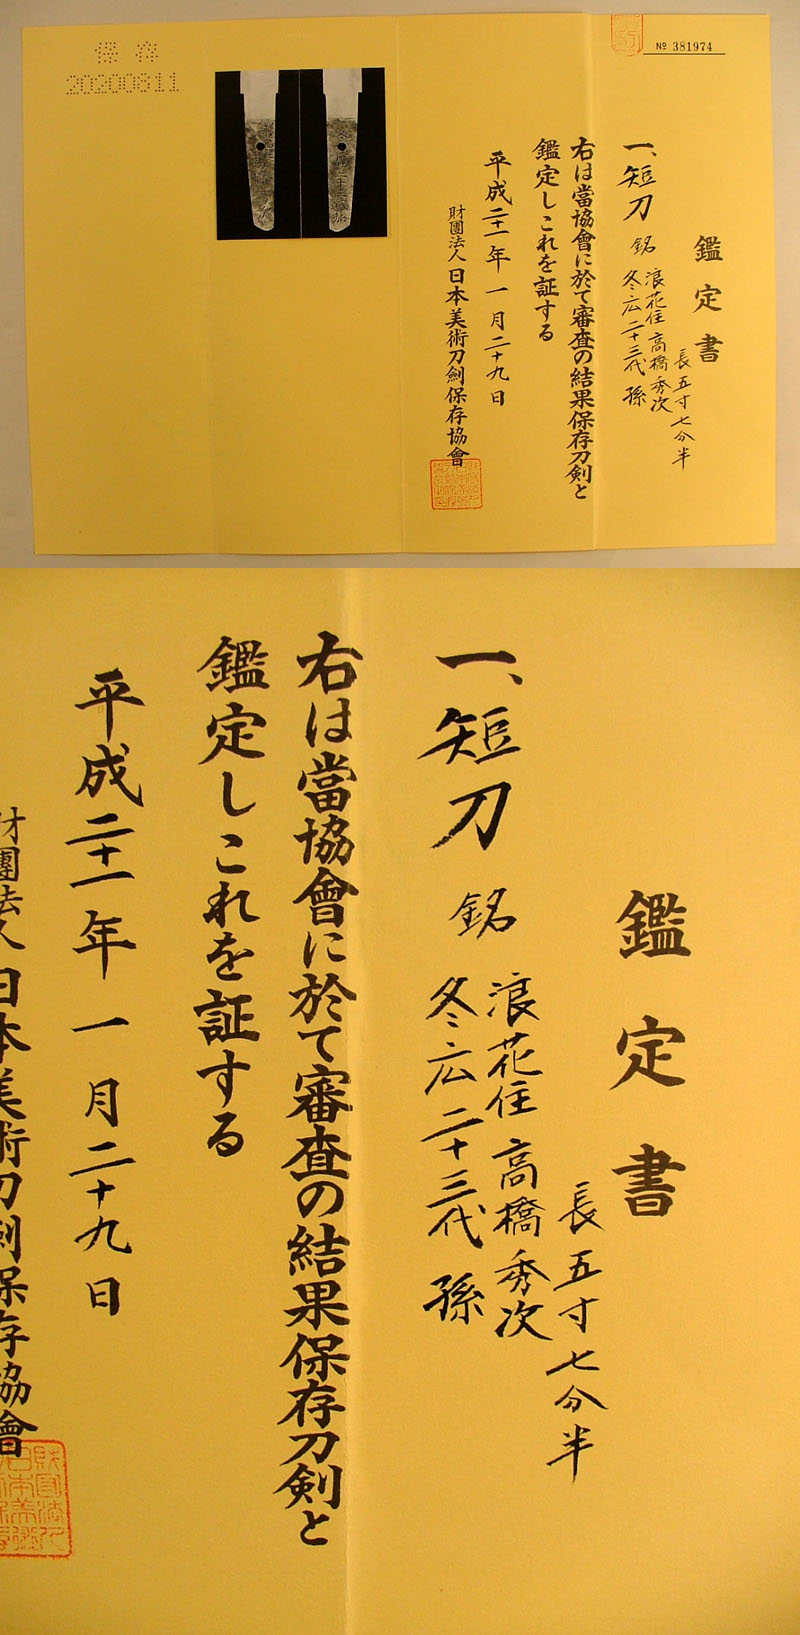 浪花住高橋秀次 Picture of Certificate